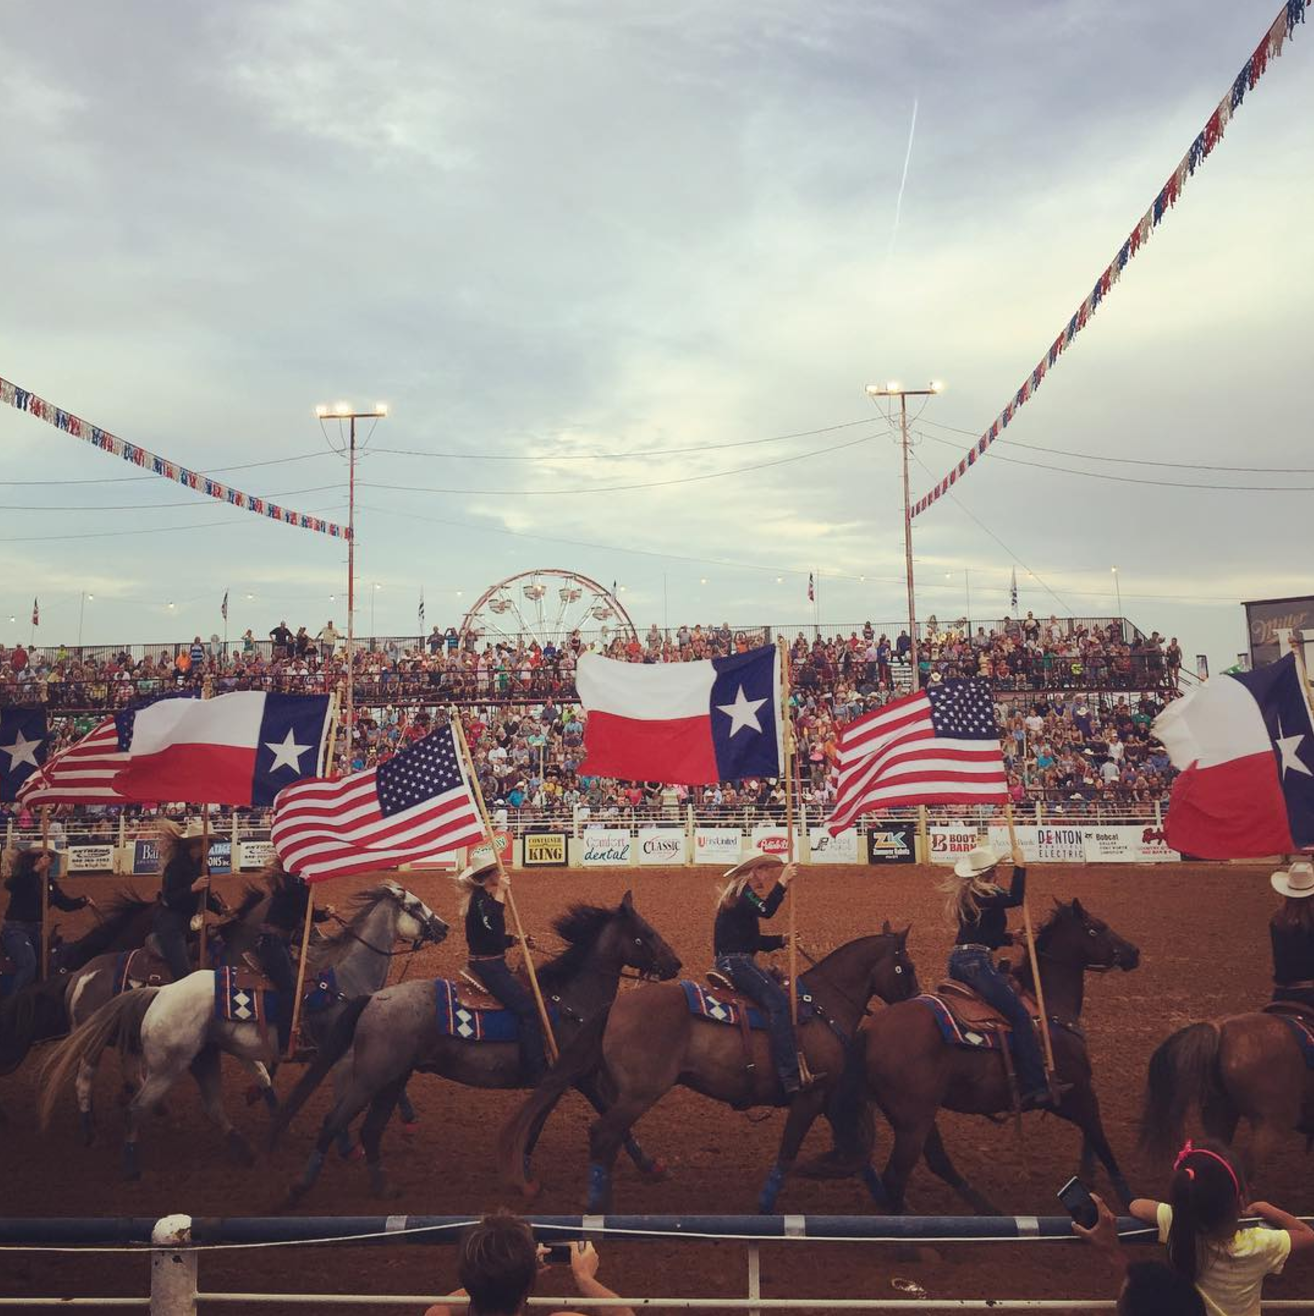 @lindz566 at the opening of the rodeo at the North Texas State Fair.